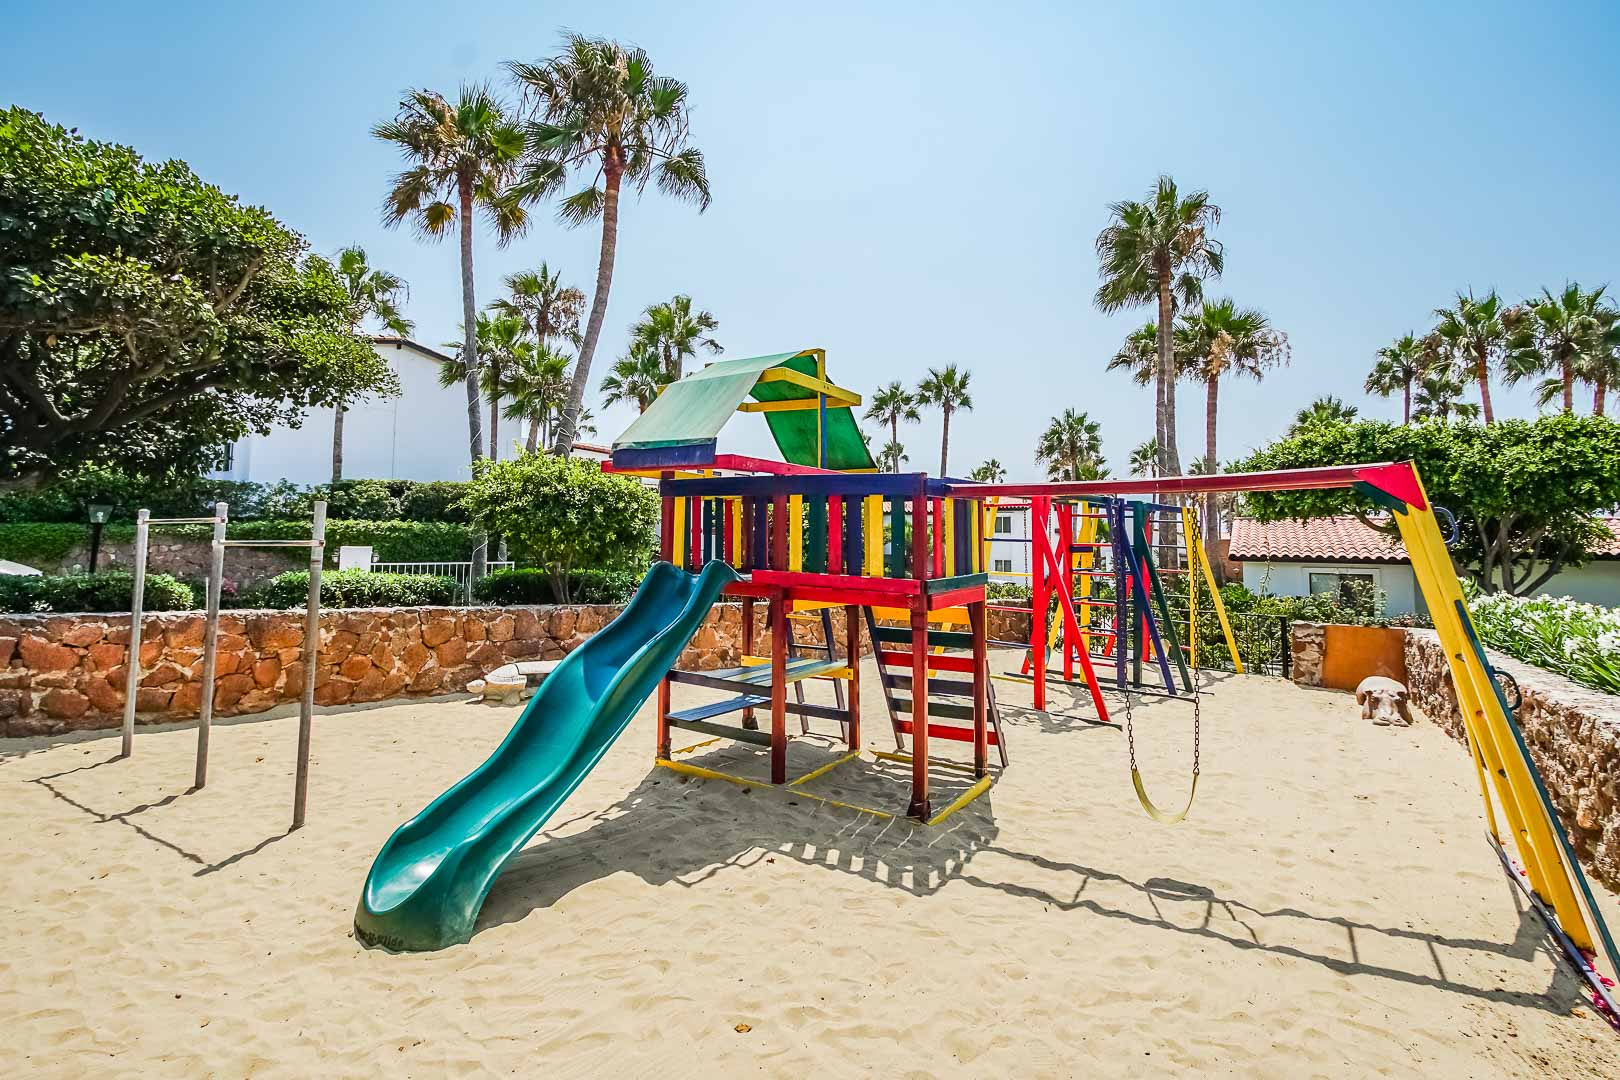 A children's playground at VRI's La Paloma in Rosarito, Mexico.